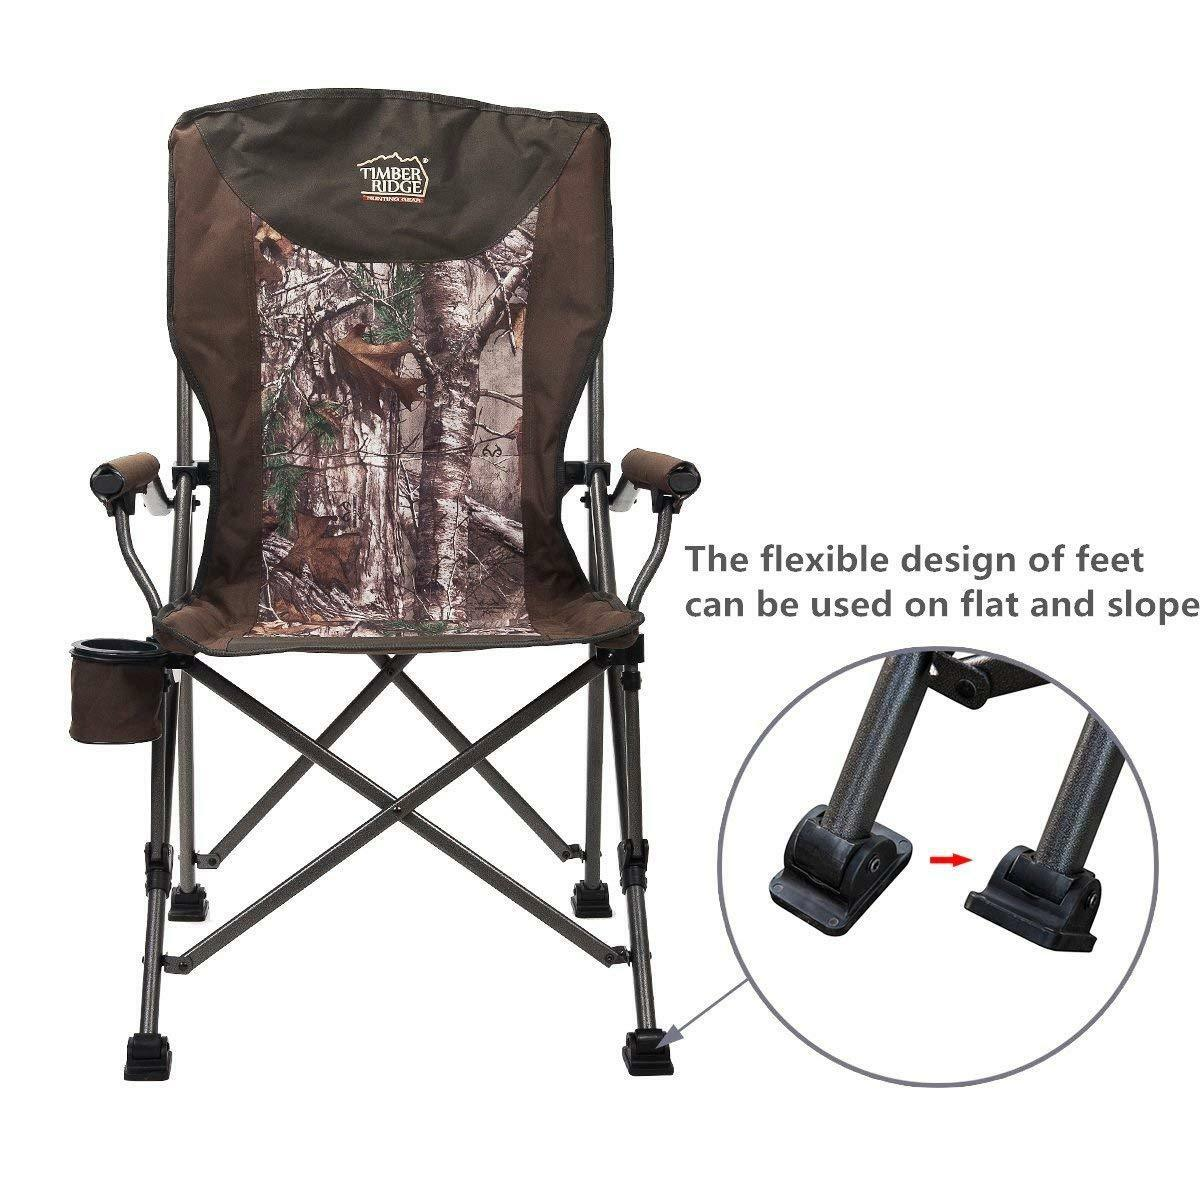 Tremendous Camo Camping Chair Ergonomic Hunting Outdoor Activity Foldable Canvas Cup Holder Machost Co Dining Chair Design Ideas Machostcouk